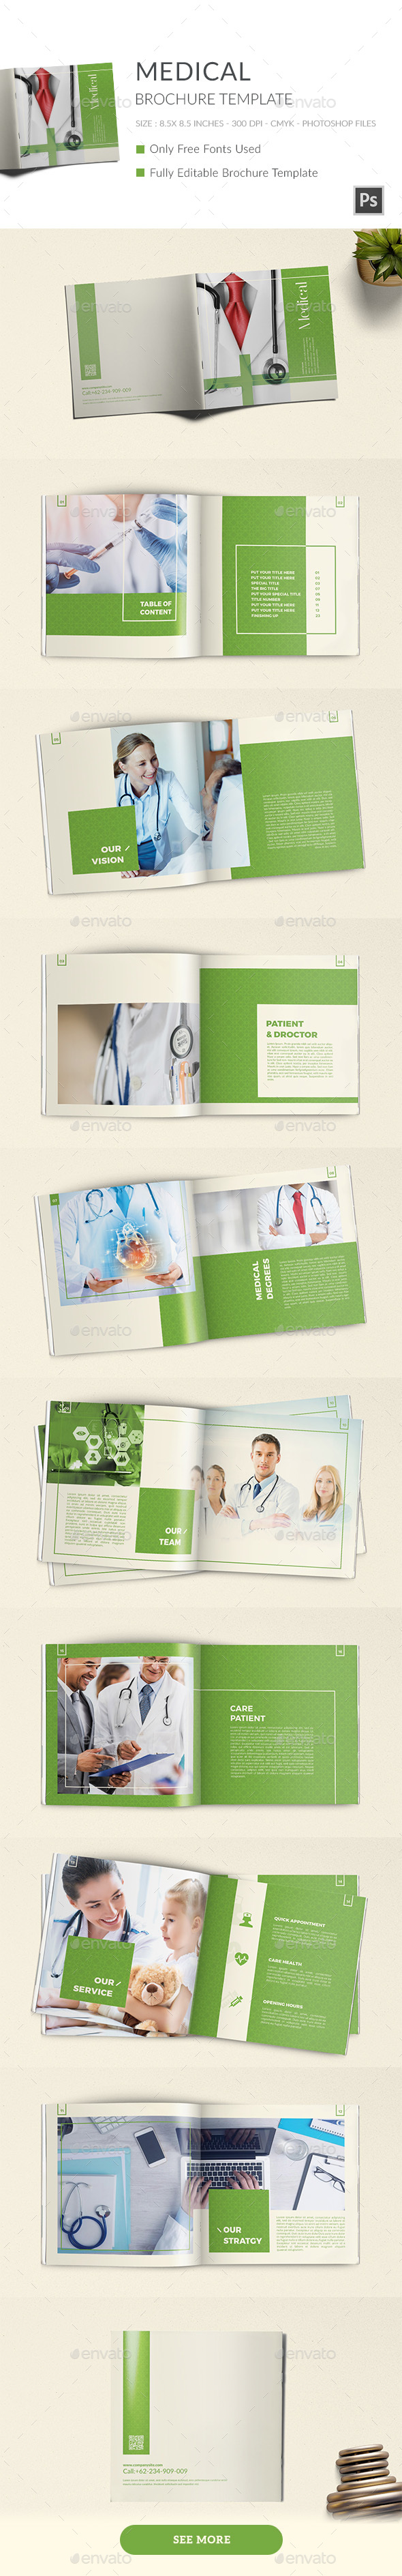 Medical Square Portfolio Brochure Template - Brochures Print Templates